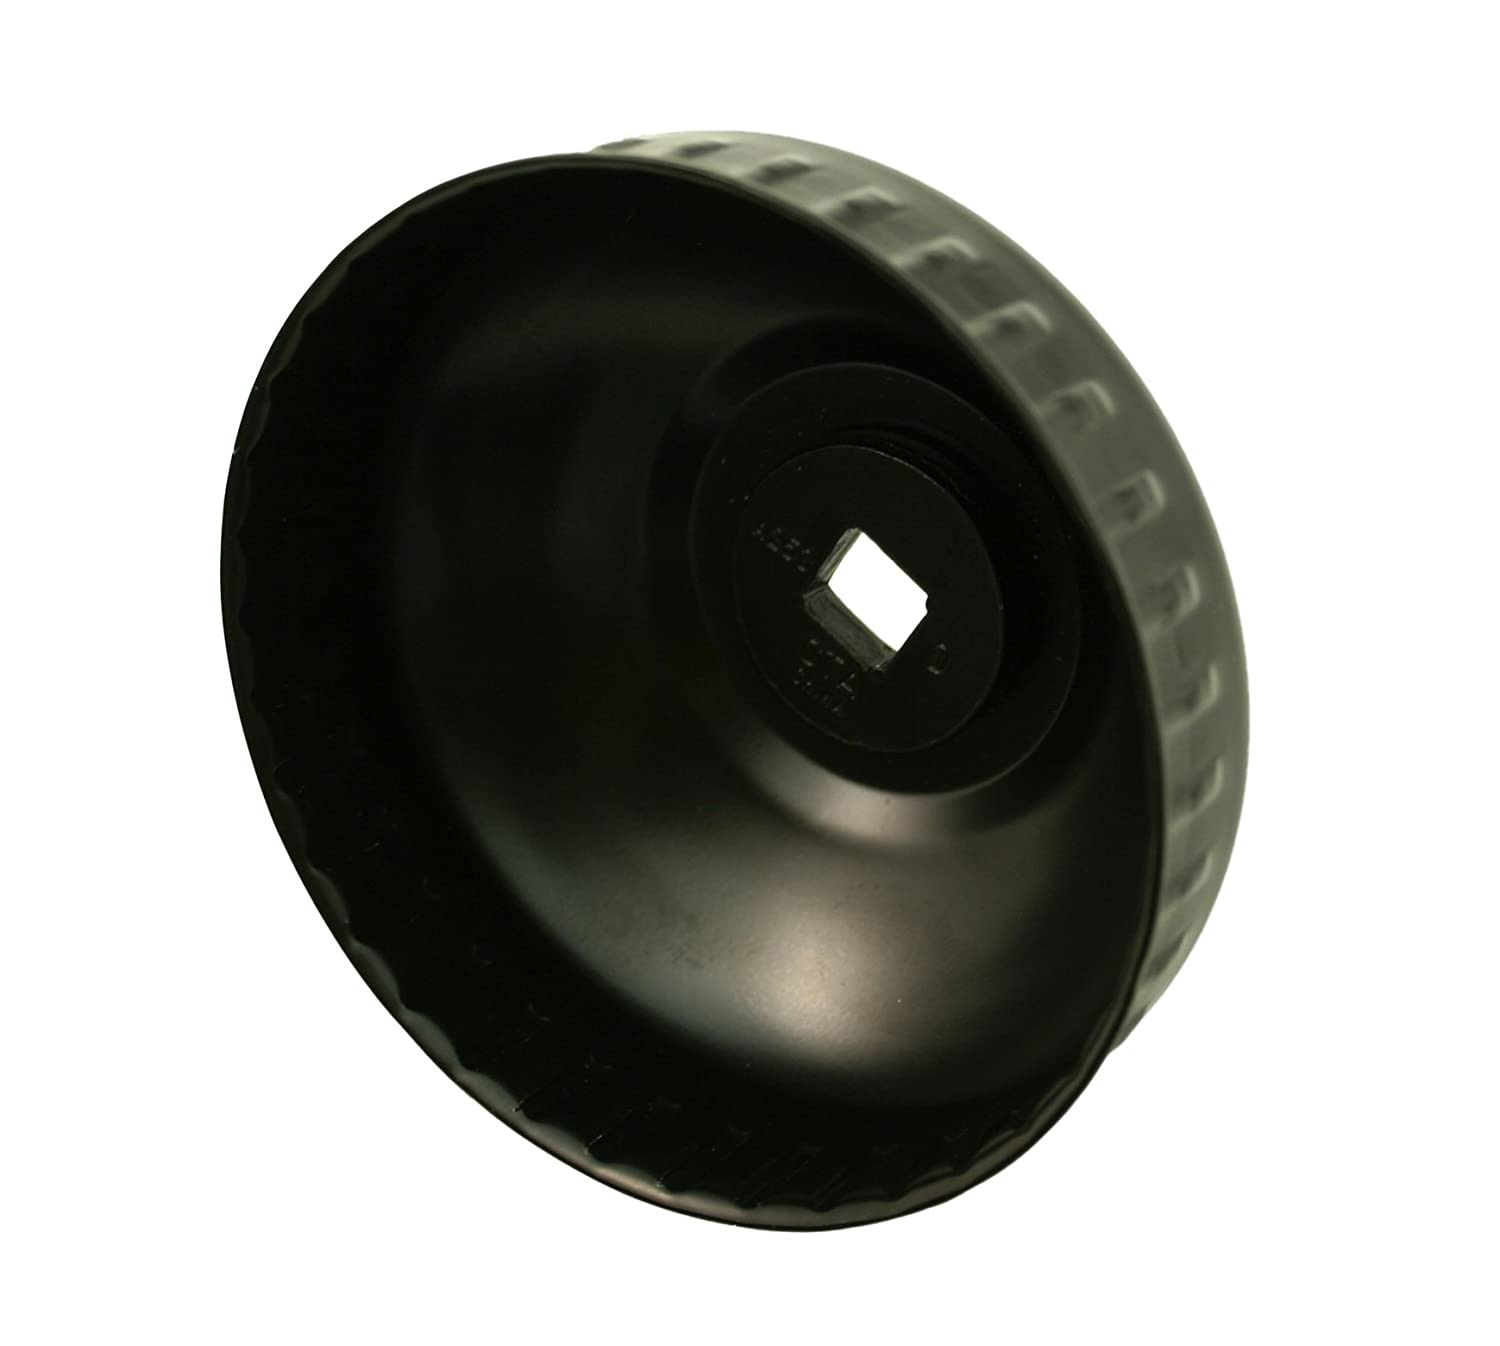 76mm CTA Tools A264 Cap-Type Oil Filter Wrench